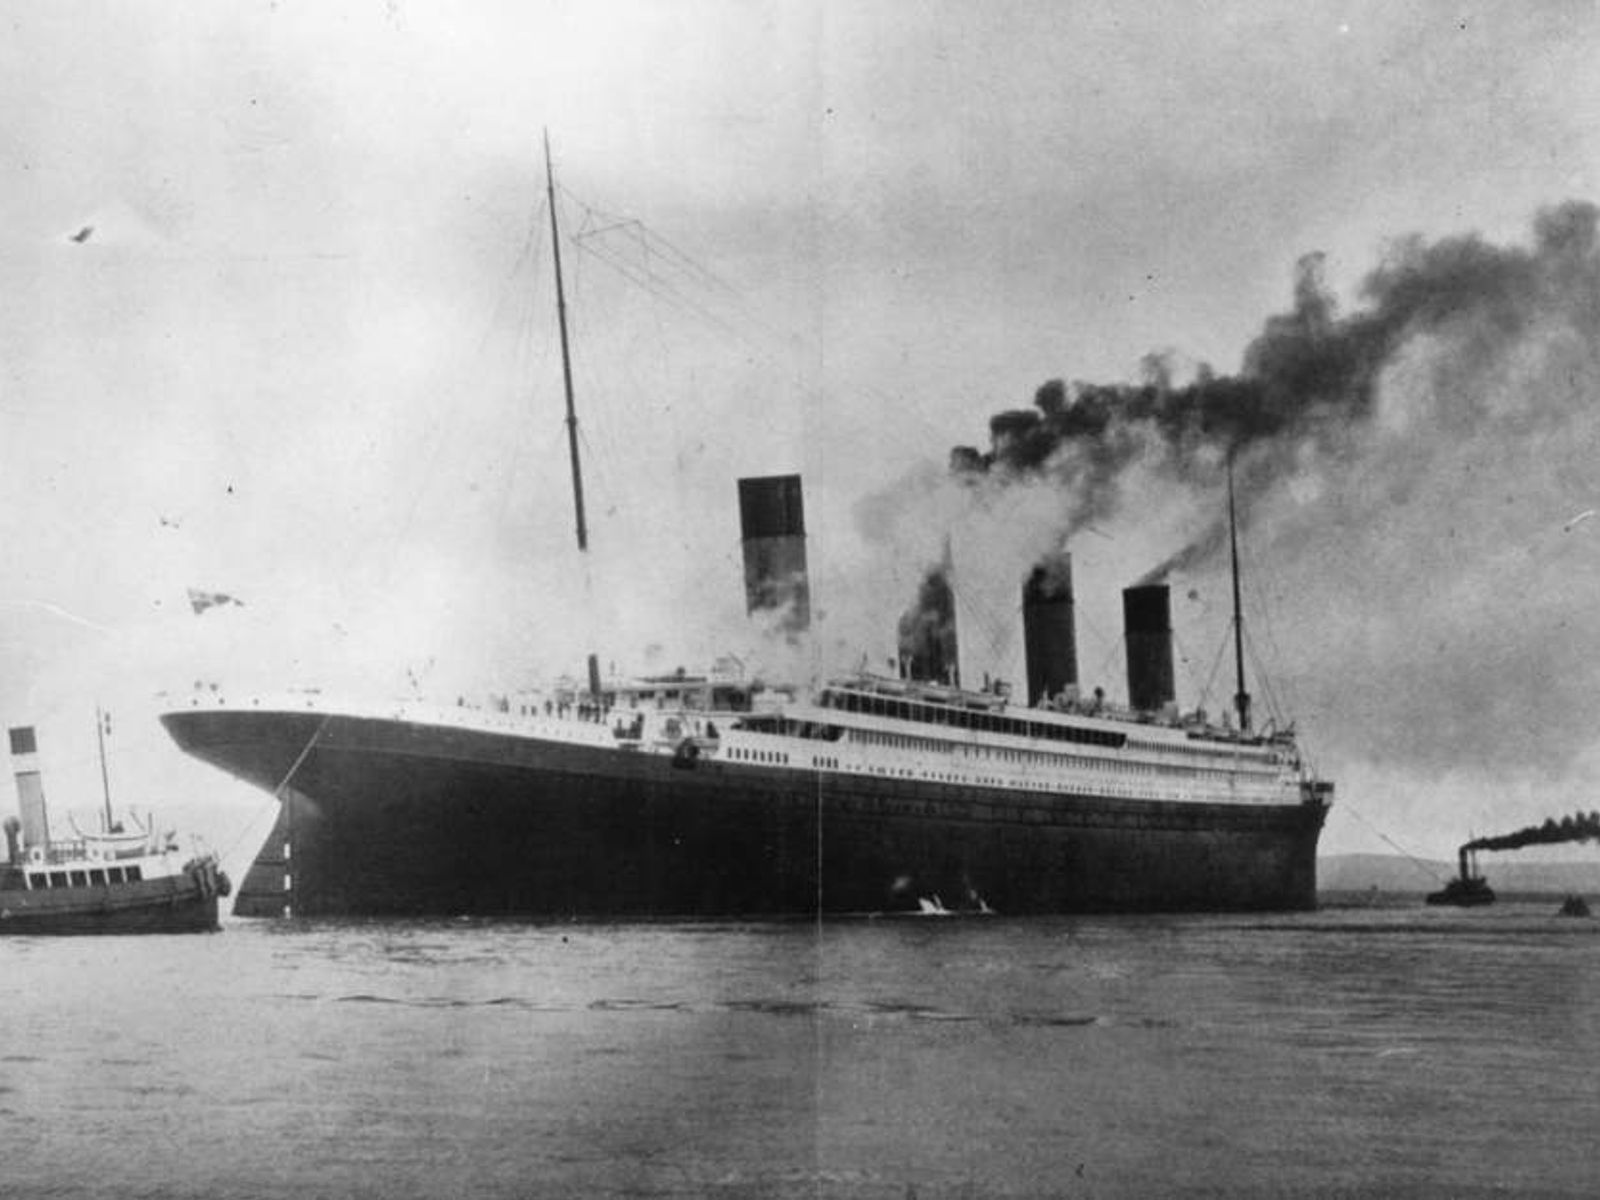 why did the titanic sank 100 years ago today, the titanic ran into some trouble obviously we know the iceberg was the cause, but what exactly did the iceberg damage that caused the ship to snap in half and fall to the bottom of the atlantic ocean.